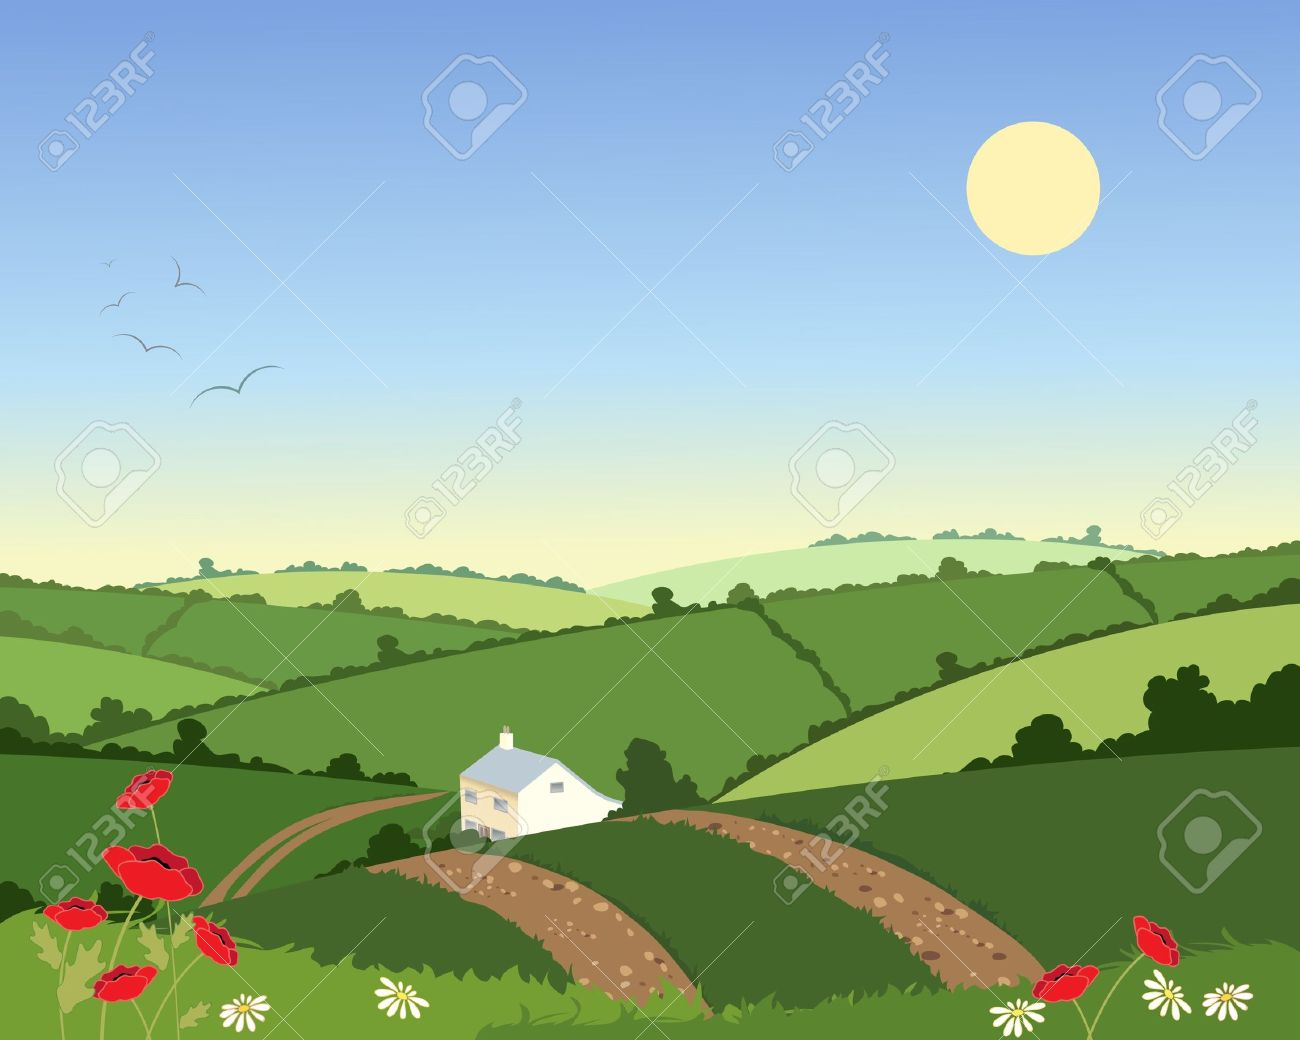 an illustration of a country cottage in a summer landscape with rolling hills hedgerows and flowers under a blue sky Stock Vector - 11307701